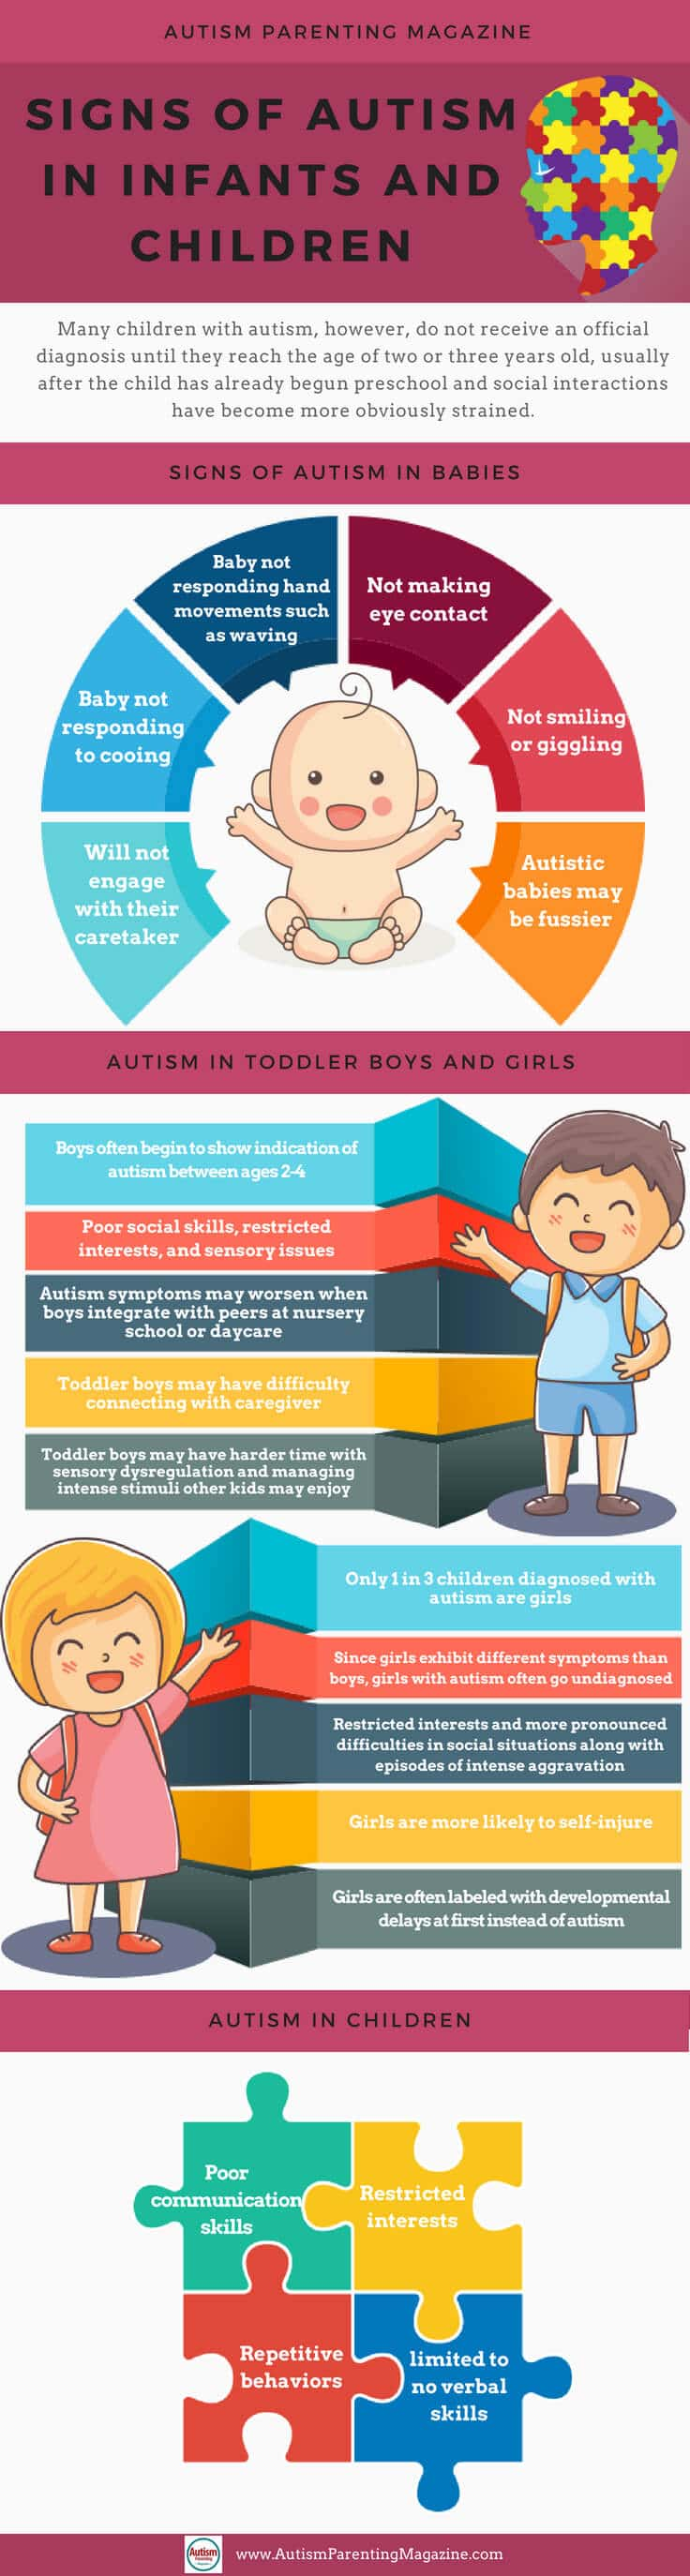 Early Autism Diagnosis Key To Effective >> Signs Of Autism In Infants And Children Ultimate Guide